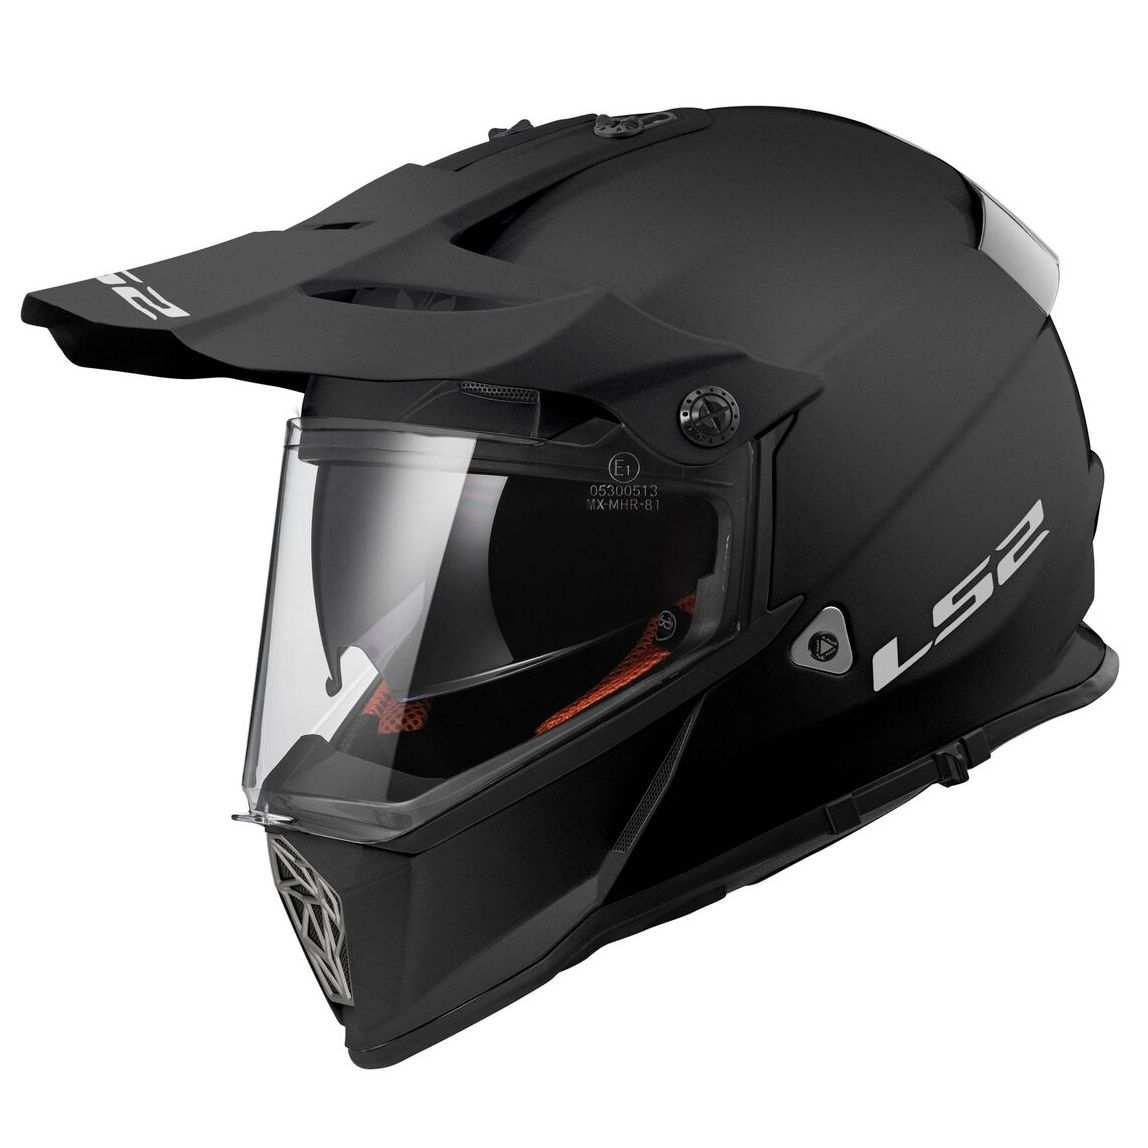 Casque Ls2 Mx436 Pioneer Solid Matt Casque Crossover 2 En 1